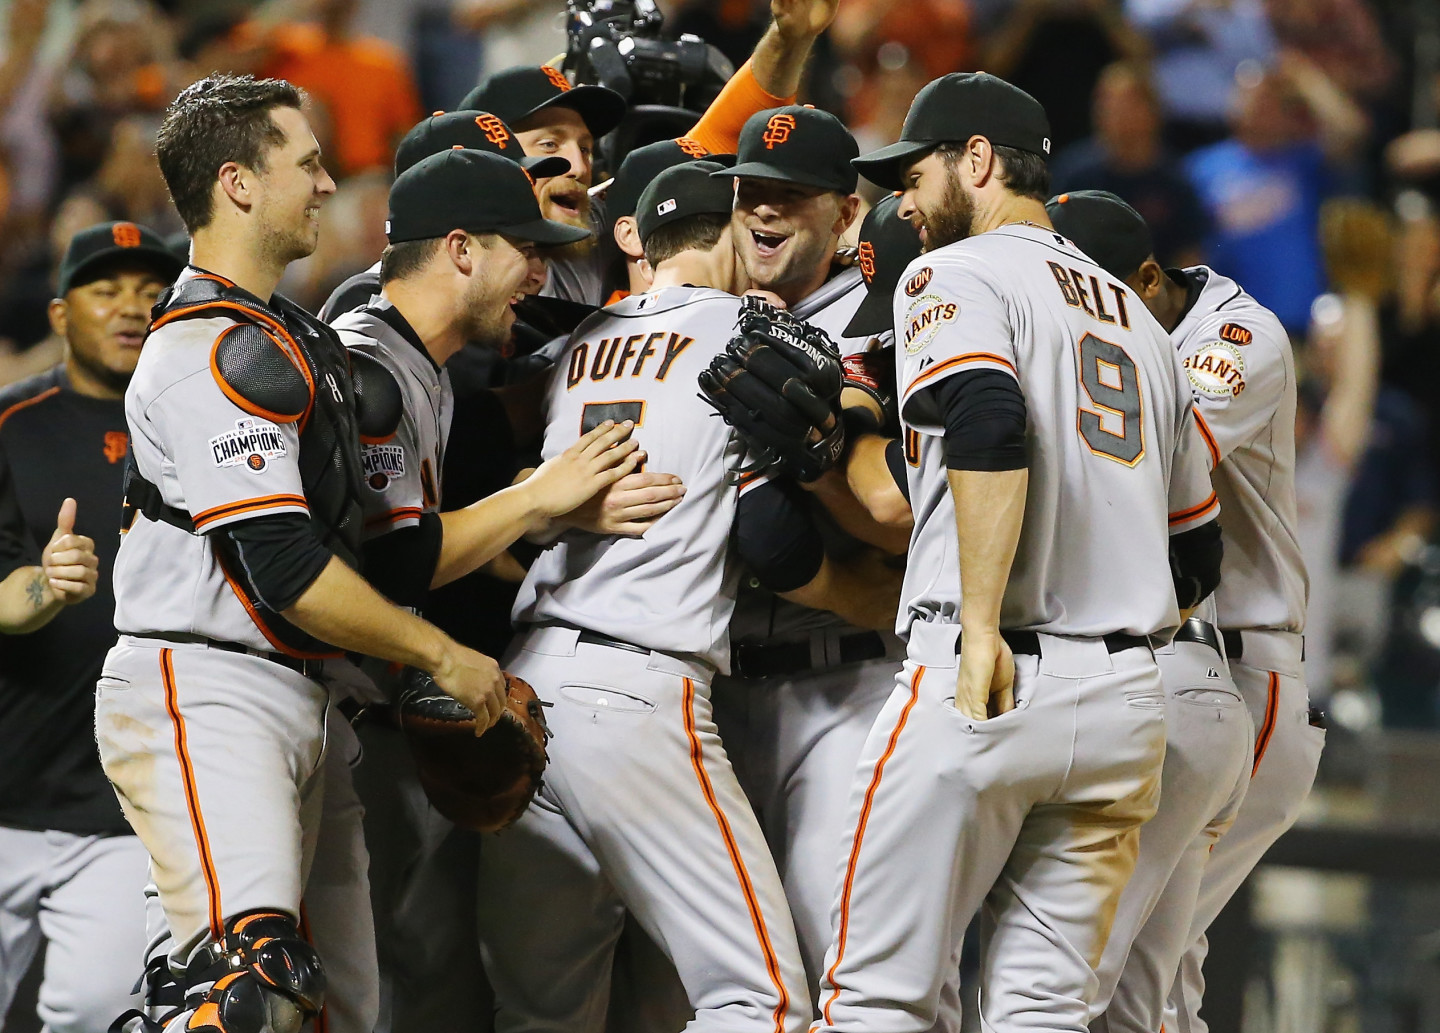 Chris Heston San Francisco Giants celebrates his no hitter with teamates against the New York Mets  after their game at Citi Field on June 9, 2015 (Al Bello/Getty)